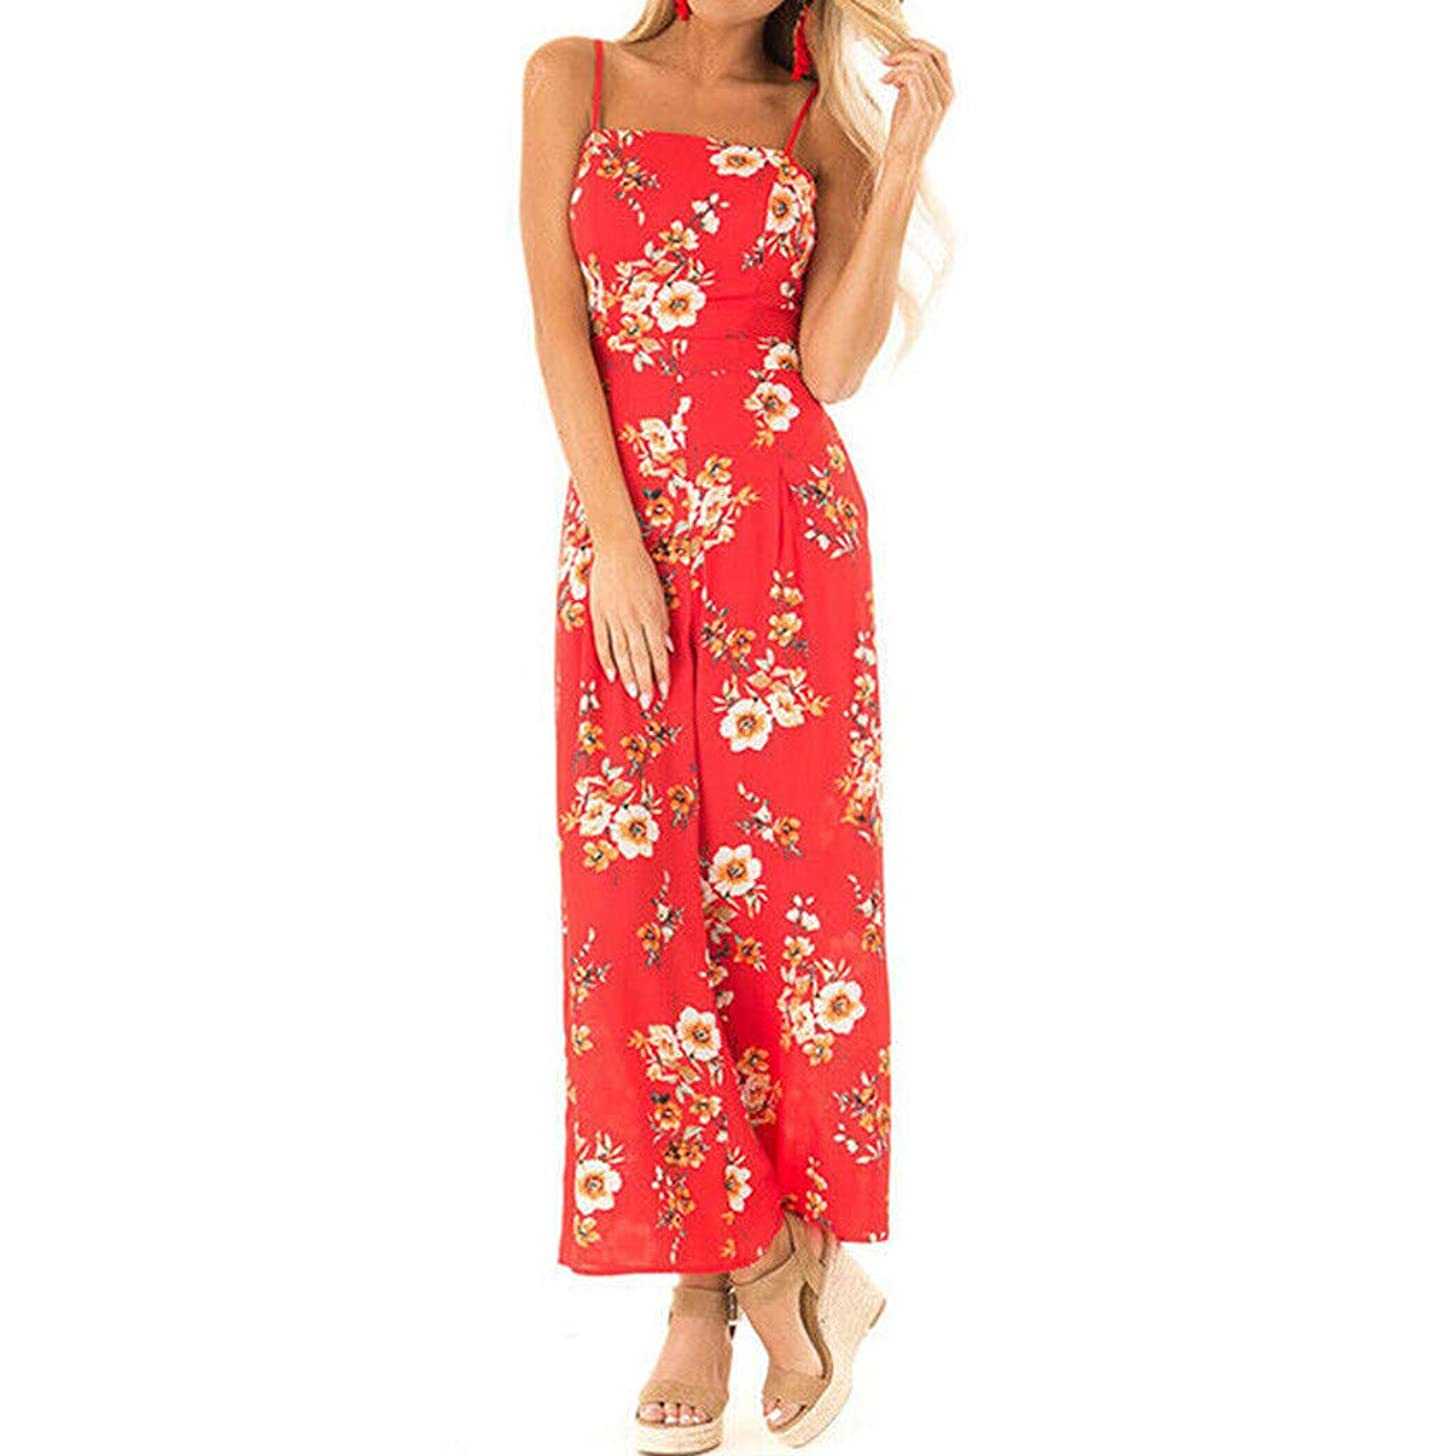 Caopixx Women's Floral Jumpsuits Strap Sleeveless Wide Leg Pants Casual Playsuits Rompers with Belt